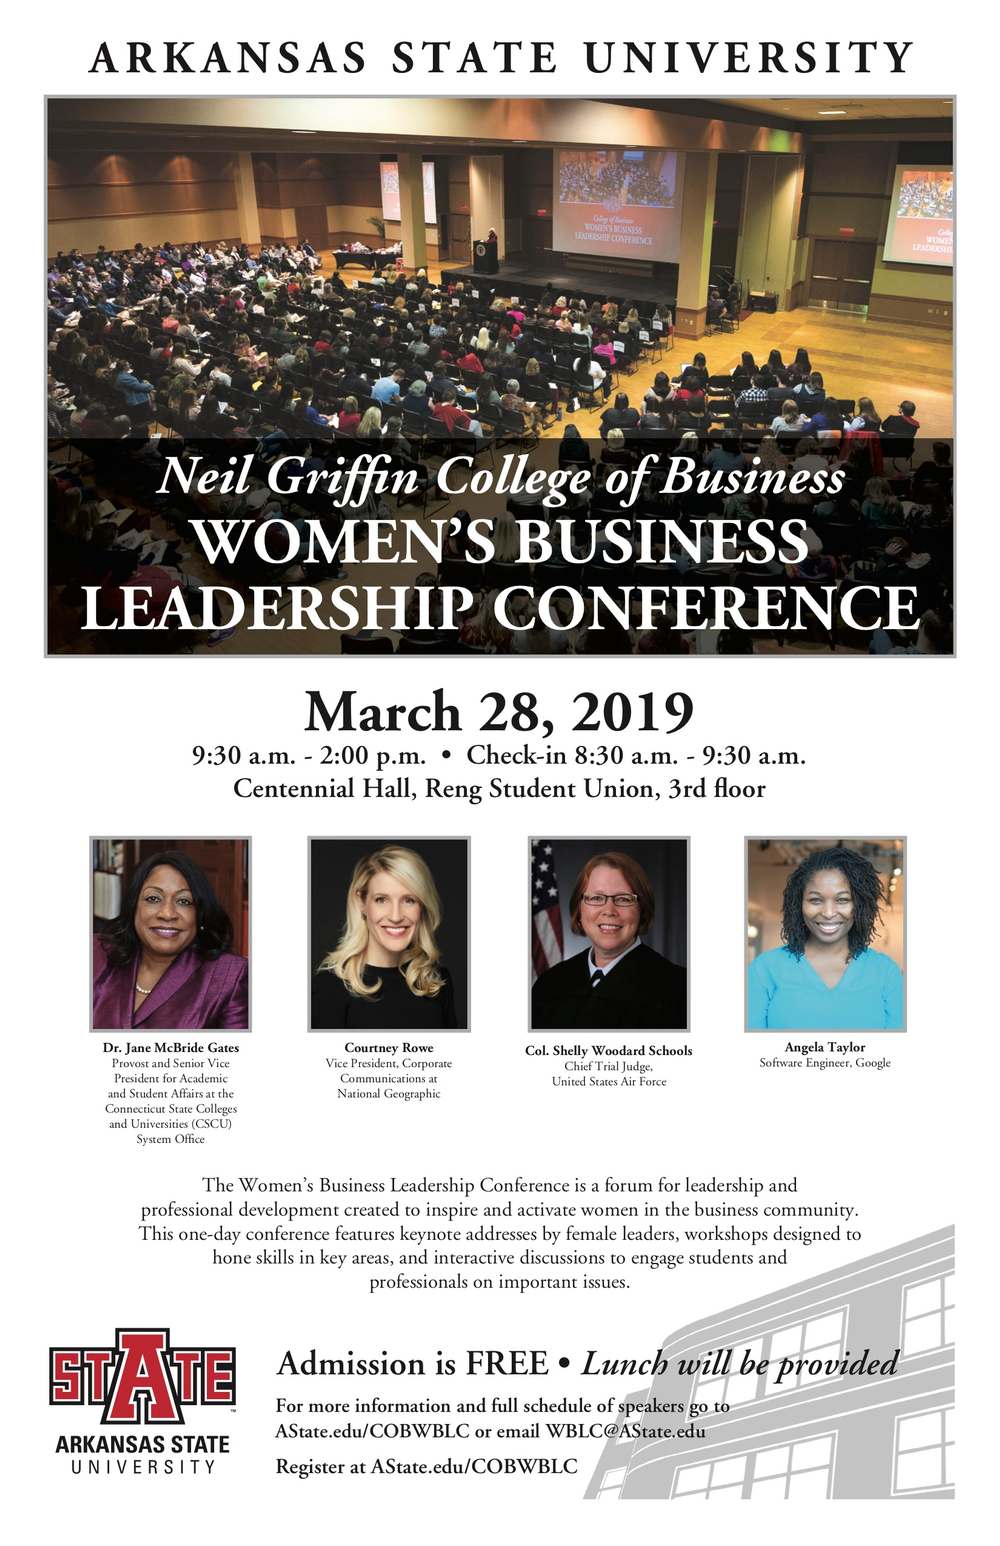 Women's Business Leadership Conference Scheduled March 28